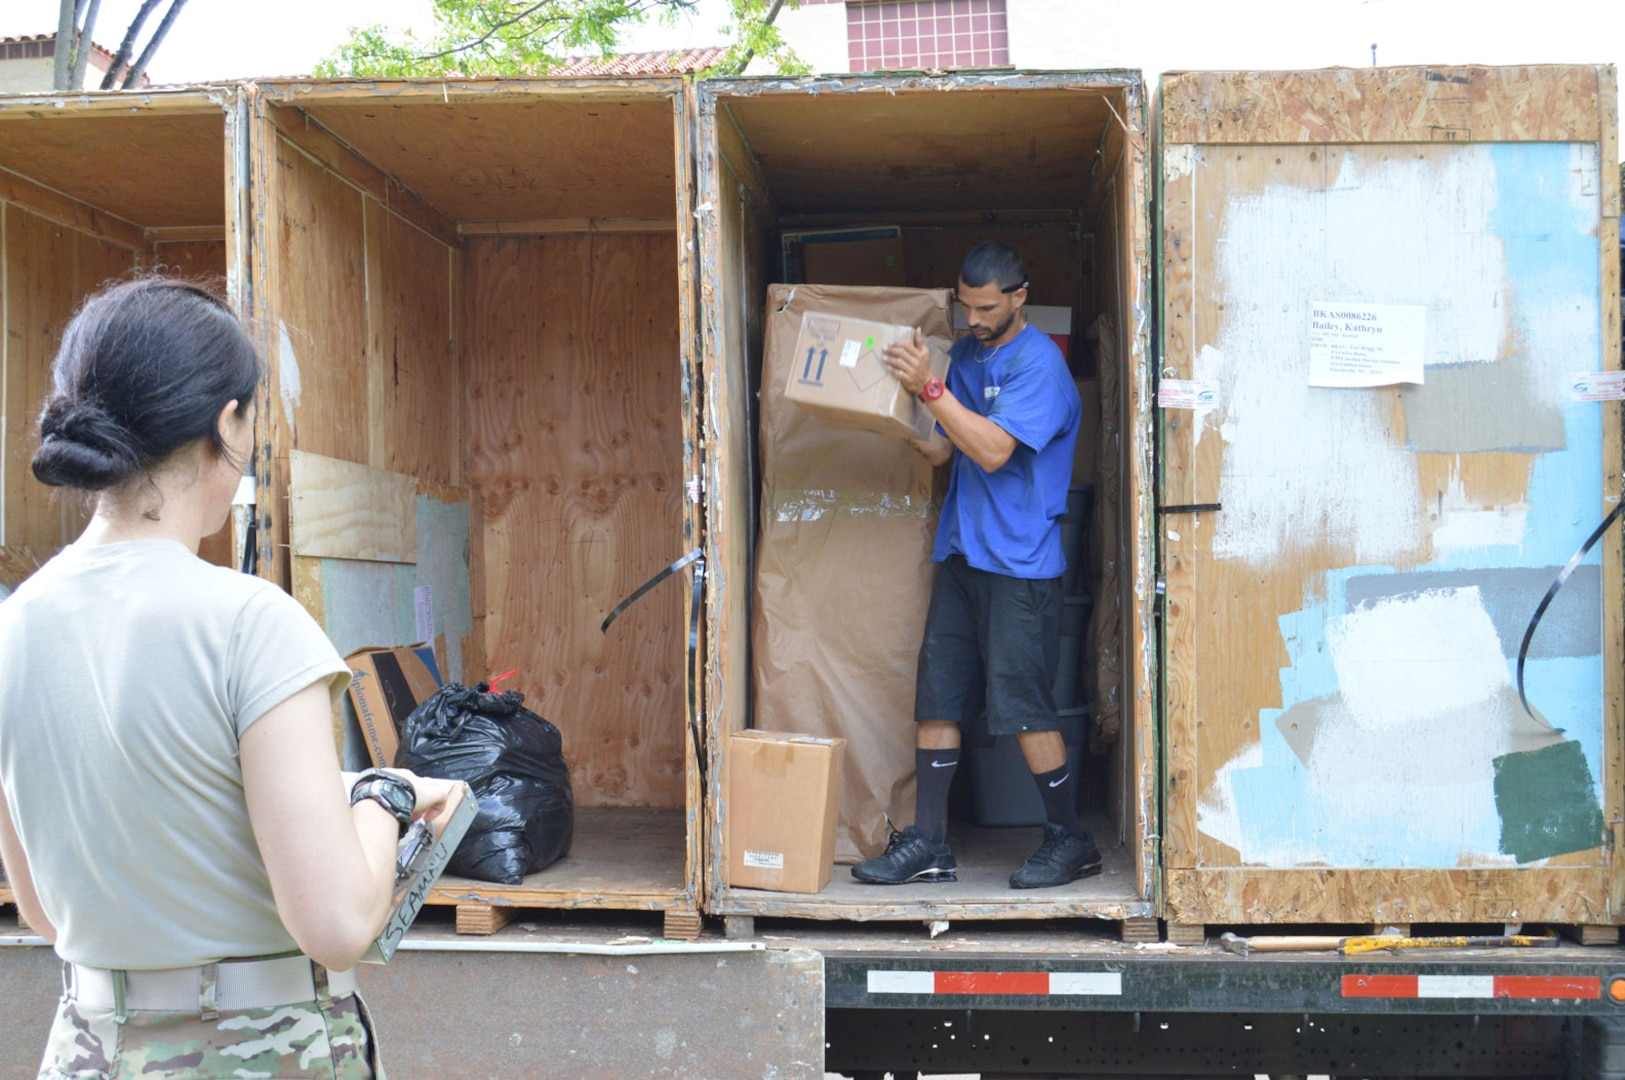 1st Lt. Kathryn Bailey, a Blackhawk pilot with the 2nd Battalion, 25th Aviation Regiment, 25th Combat Aviation Brigade, 25th Infantry Division, supervises the delivery and unpacking of her household items May 11 on Wheeler Army Airfield, Hawaii.